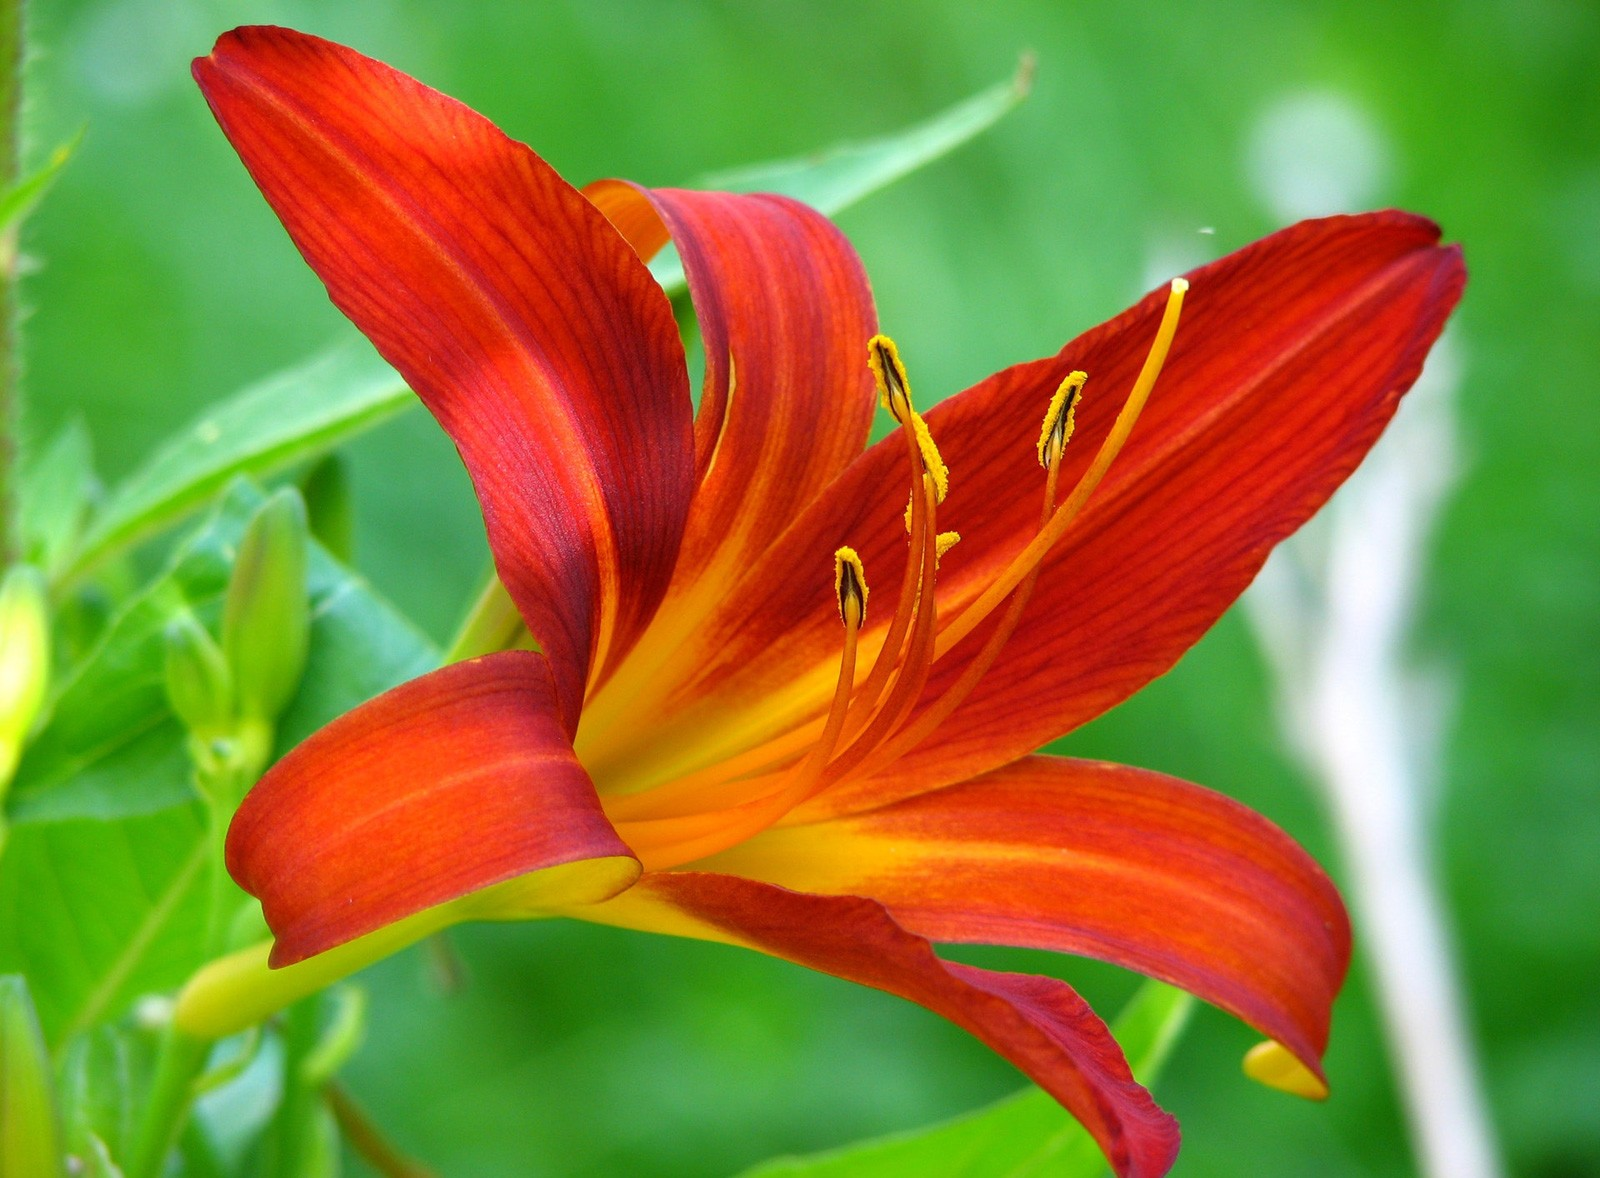 Lily meaning and symbolism of the lily on whats your sign symbolic lily meaning izmirmasajfo